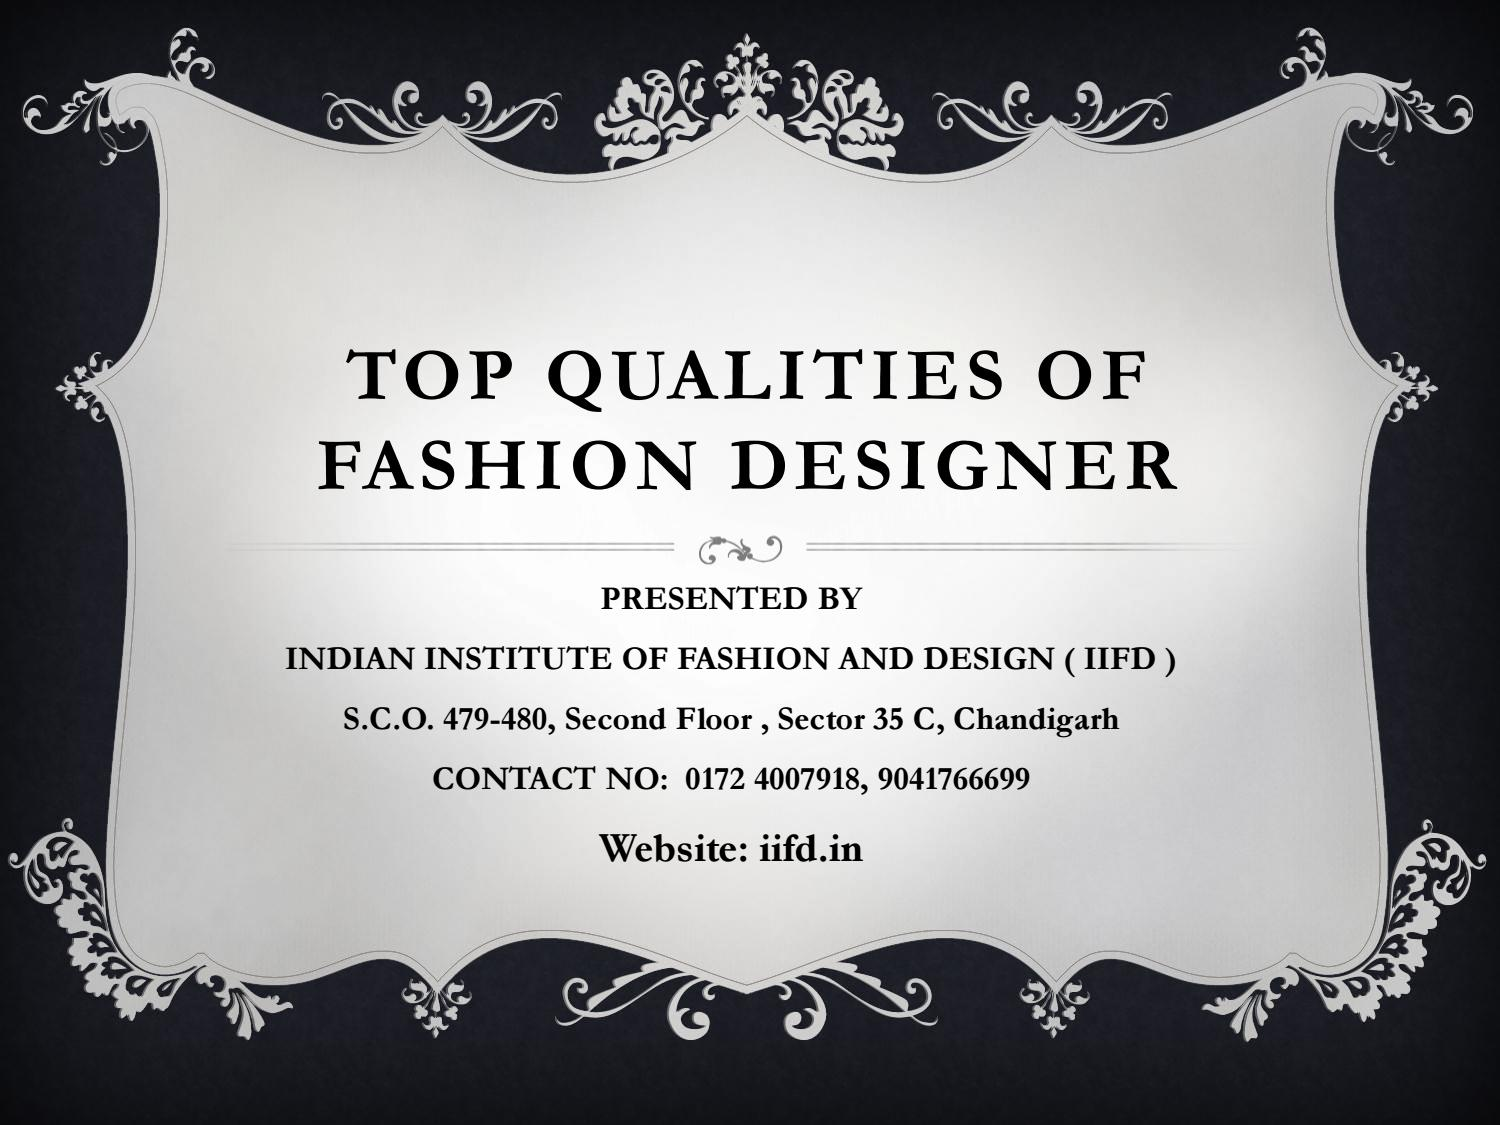 Top Qualities Of A Fashion Designer By Indianfashioninstitutechd Issuu